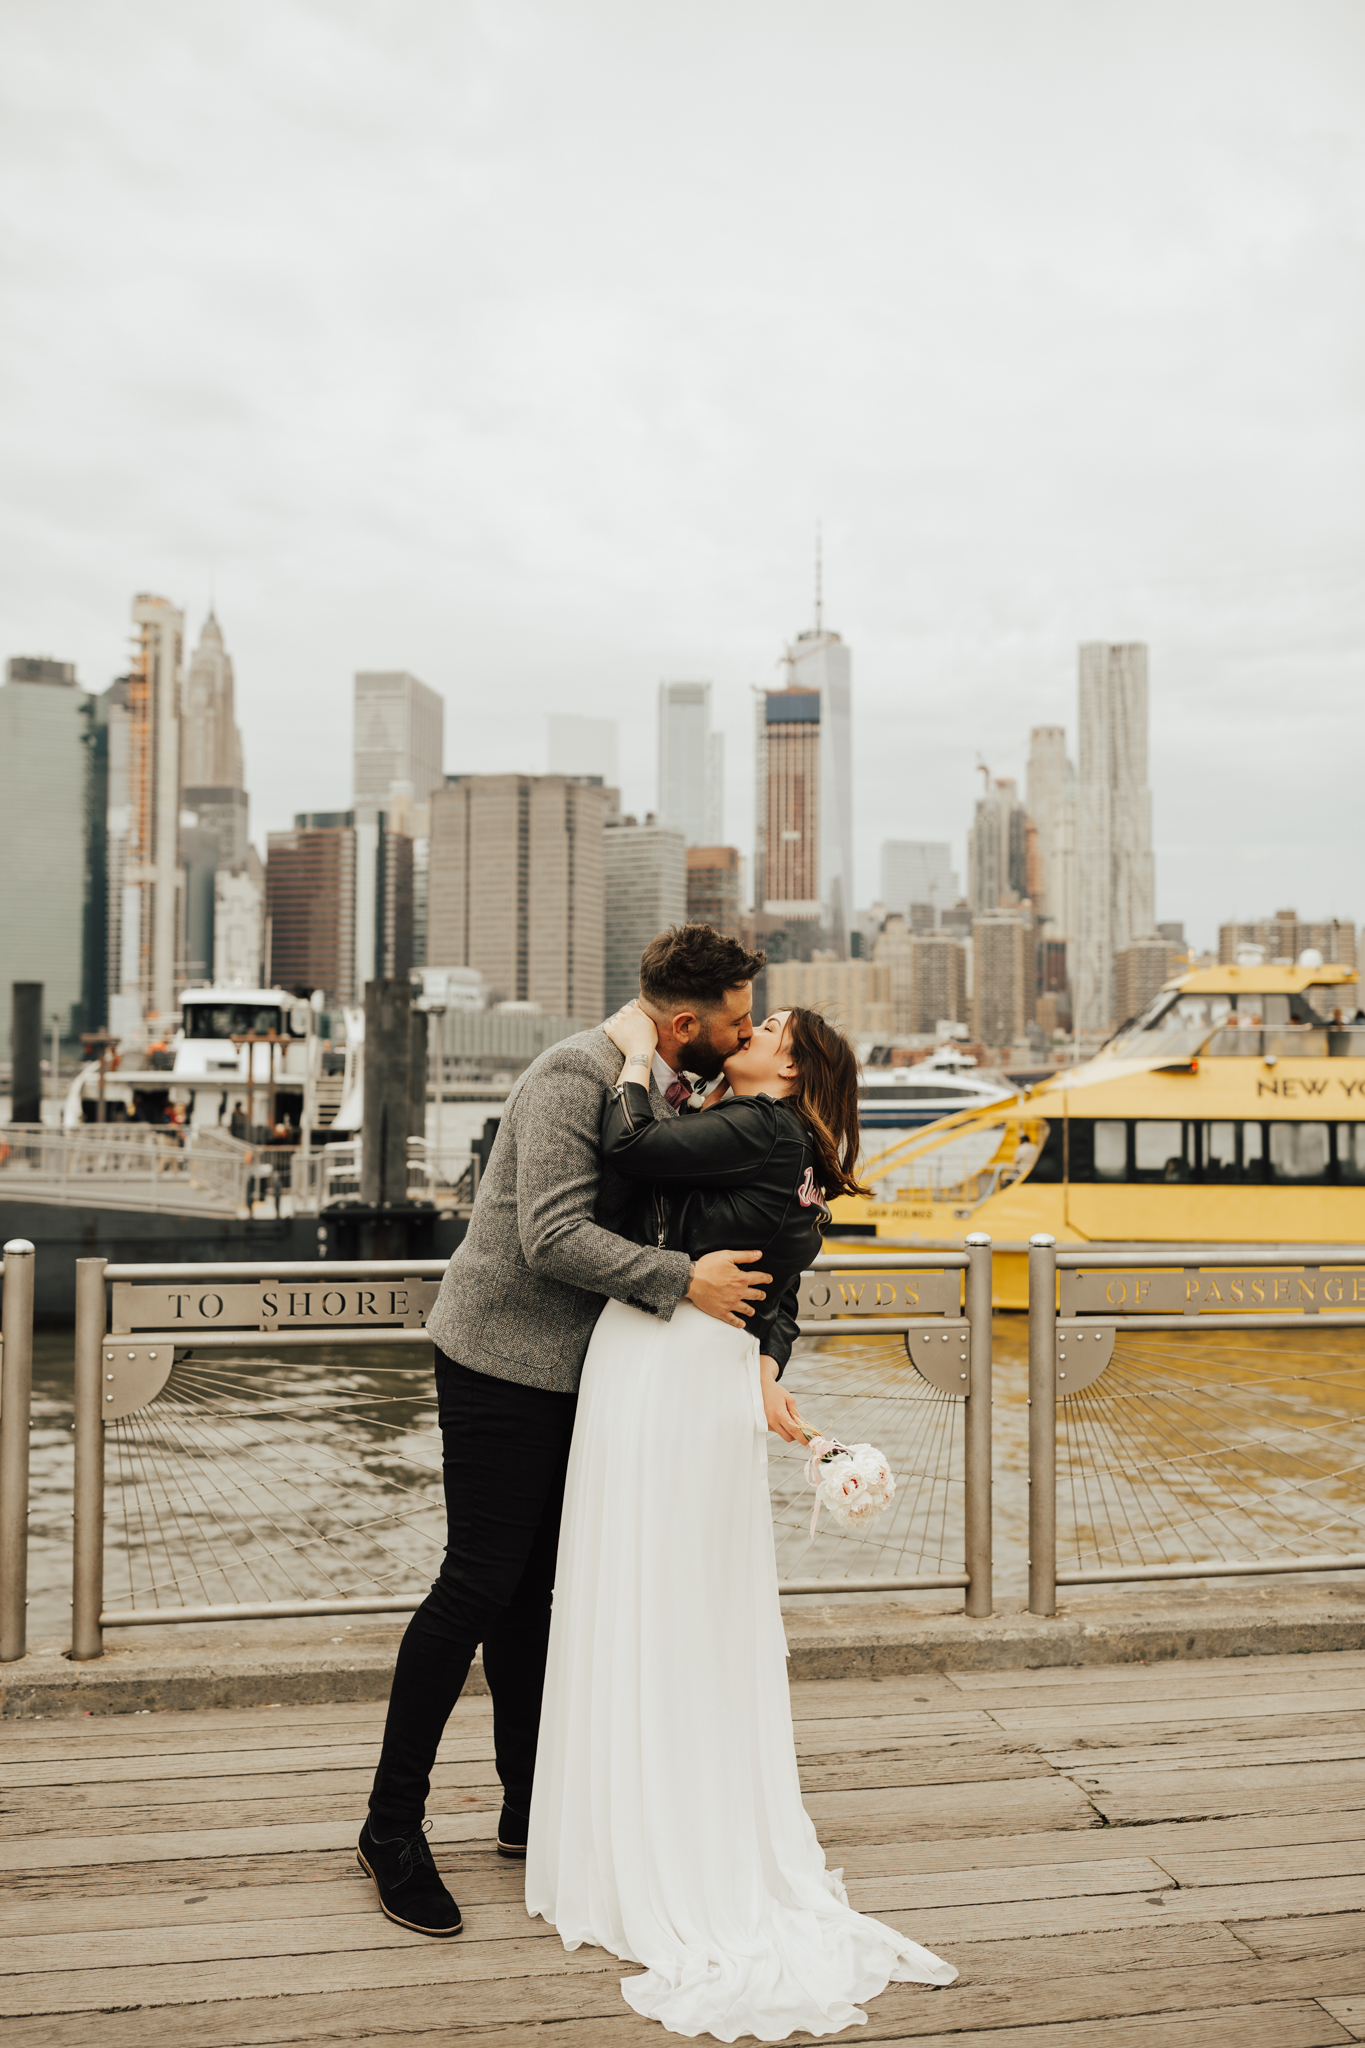 nyc_elopement-107.jpg